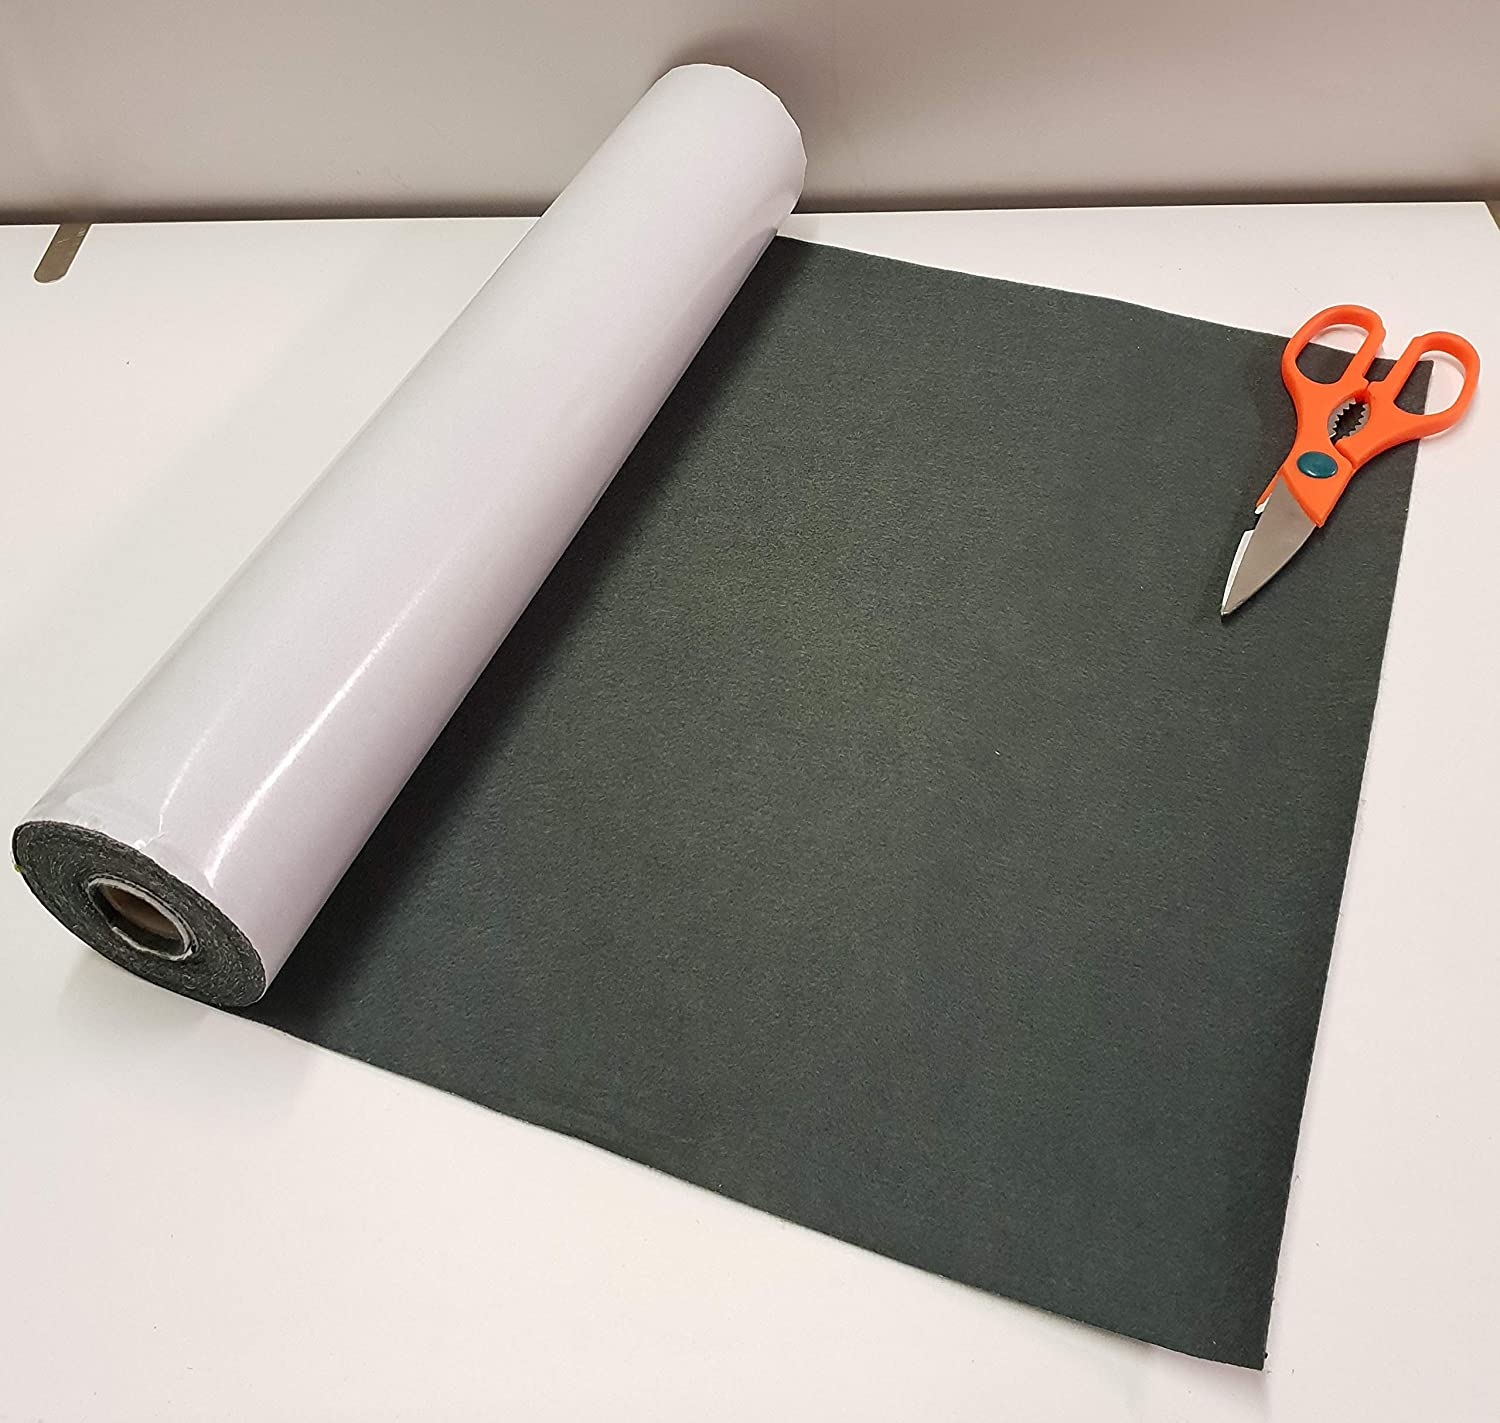 BAIZE One Metre x 450mm wide roll of BLACK STICKY BACK SELF ADHESIVE FELT